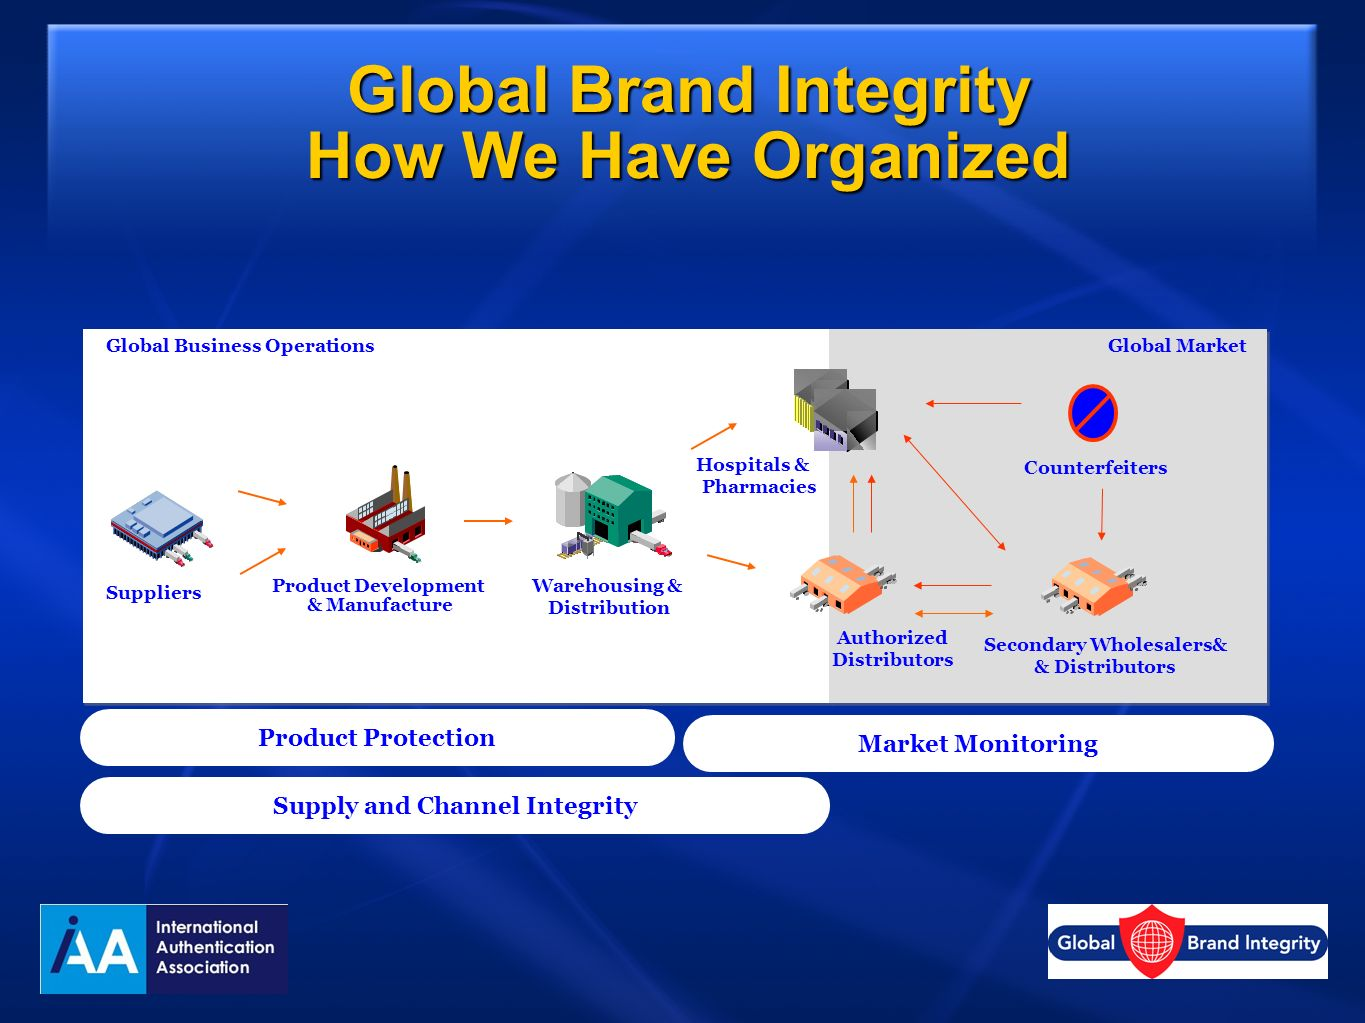 Global Brand Integrity How We Have Organized R&DManufactureDistributionMarket Warehousing & Distribution Product Development & Manufacture Global Busi